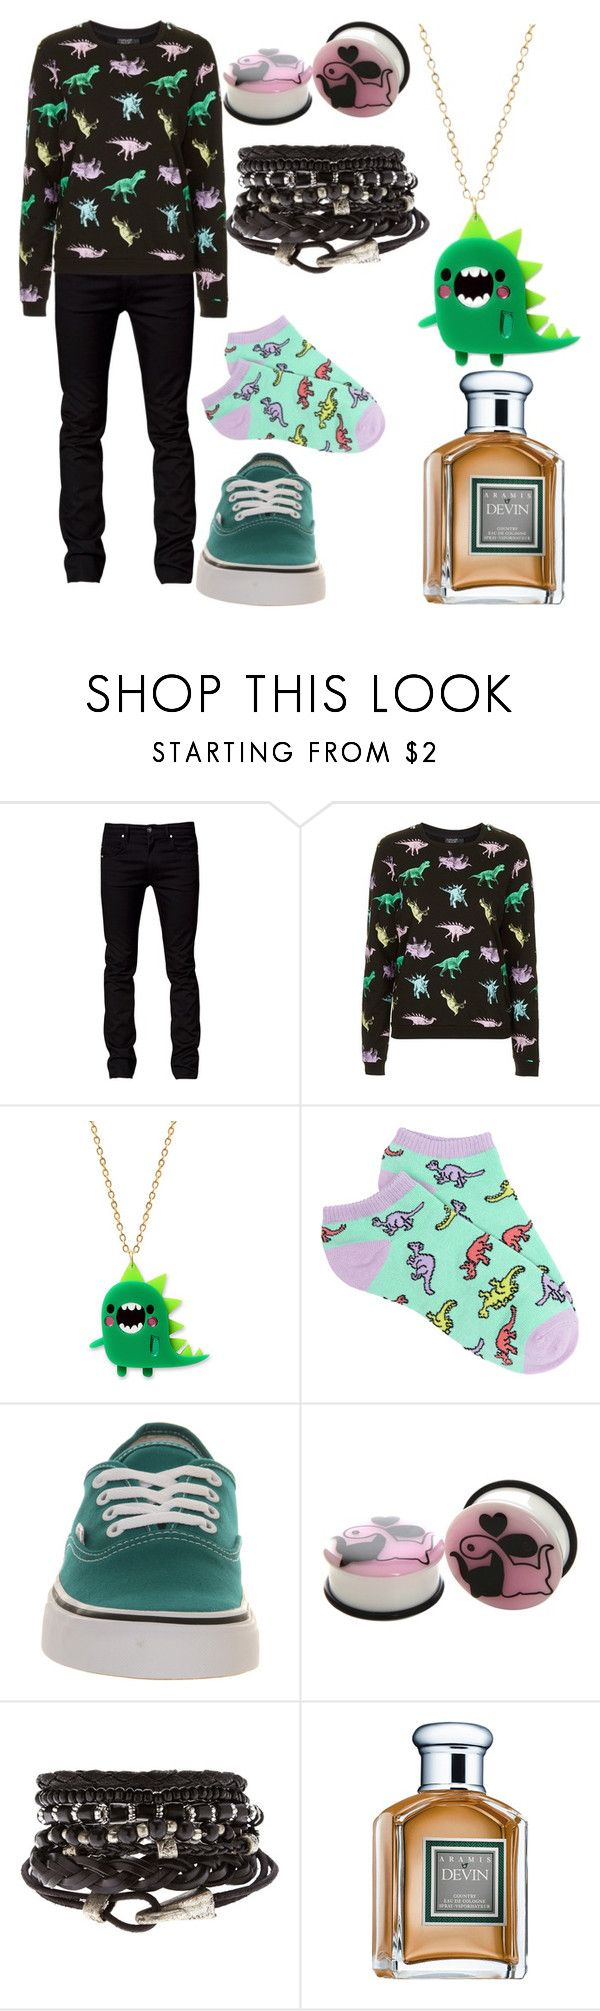 """""""Untitled #616"""" by dino-satan666 ❤ liked on Polyvore featuring Tiger of Sweden, Topshop, Forever 21, Vans and Aramis"""